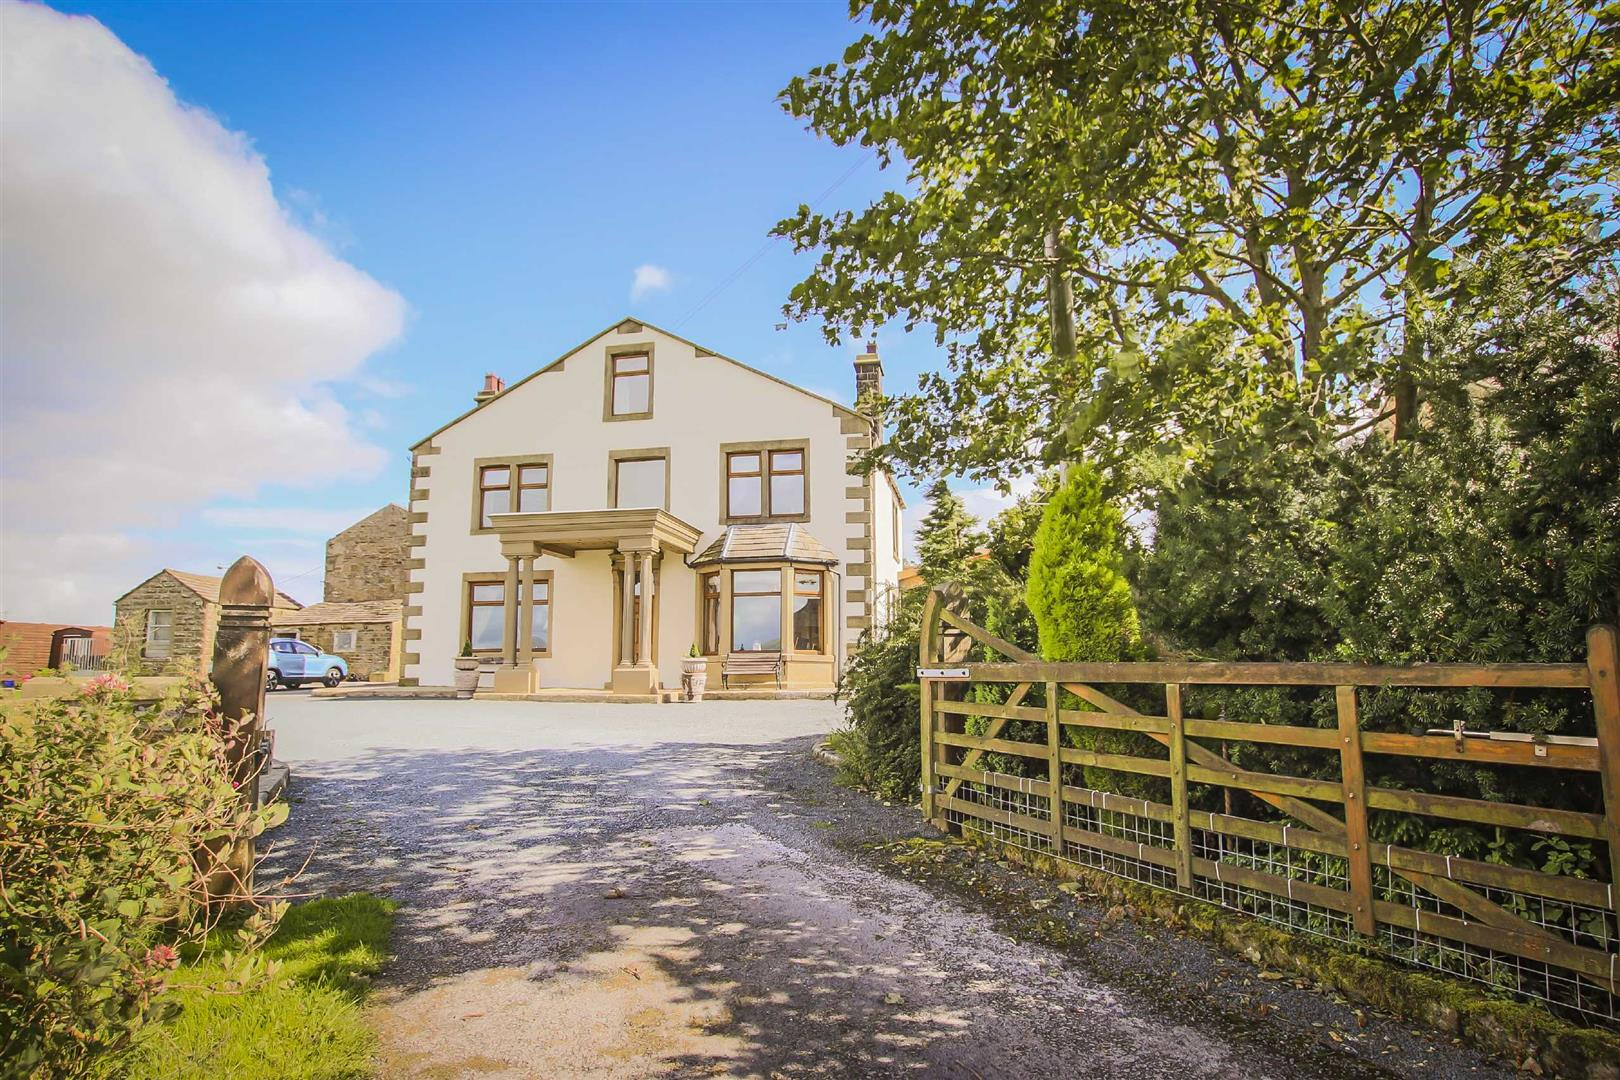 7 Bed Detached House For Sale - Main Image